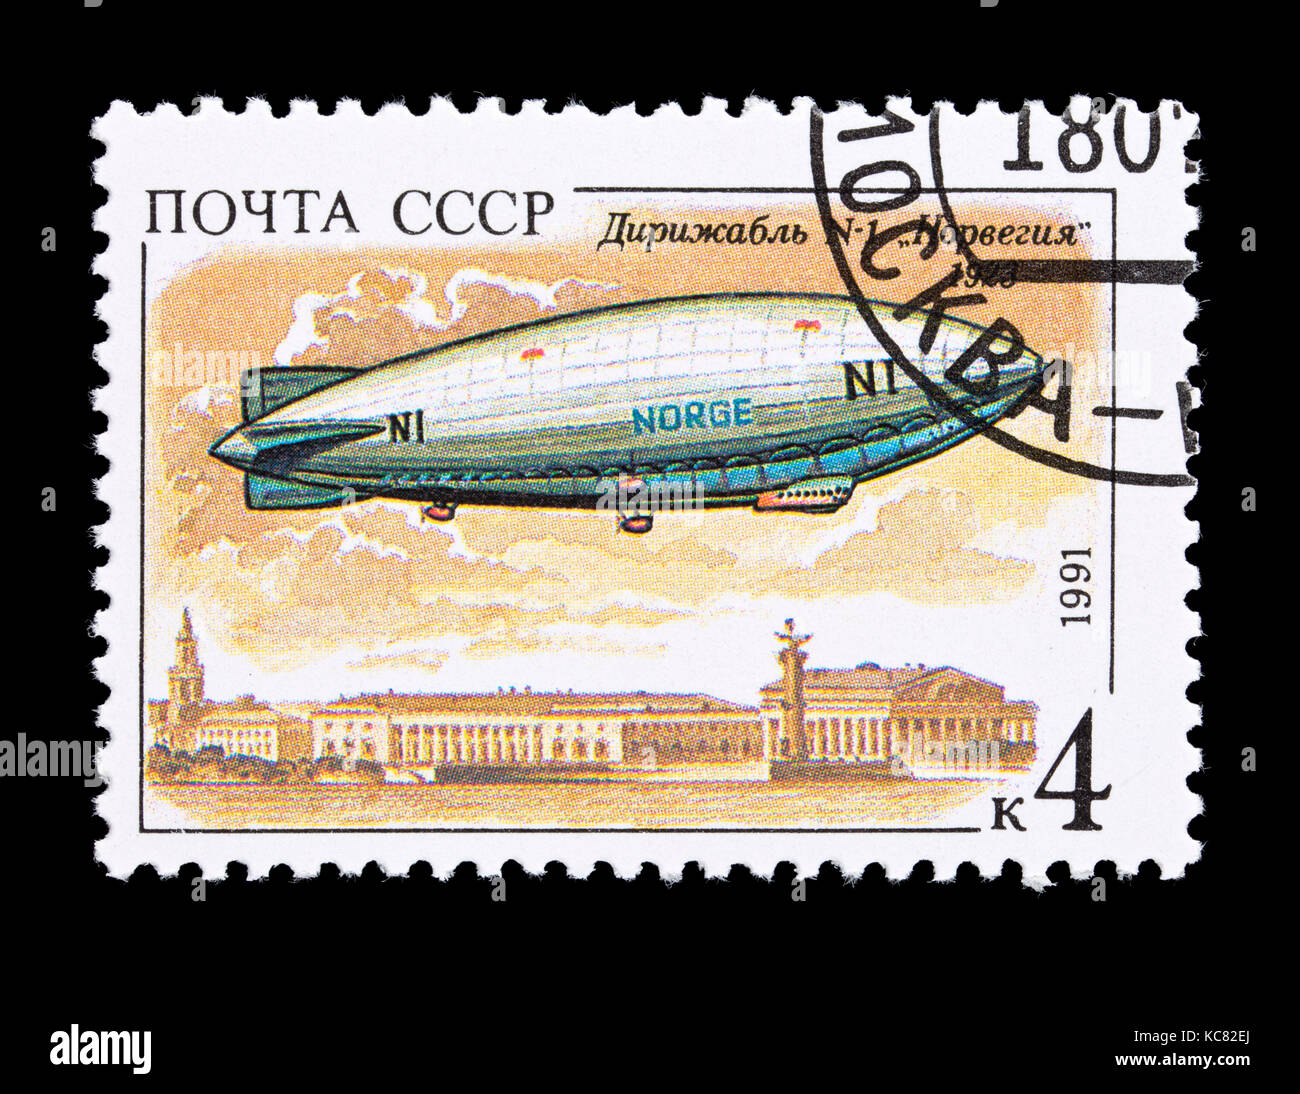 Postage stamp from the Soviet Union (USSR) depicting the airship Norge, 1923. Stock Photo